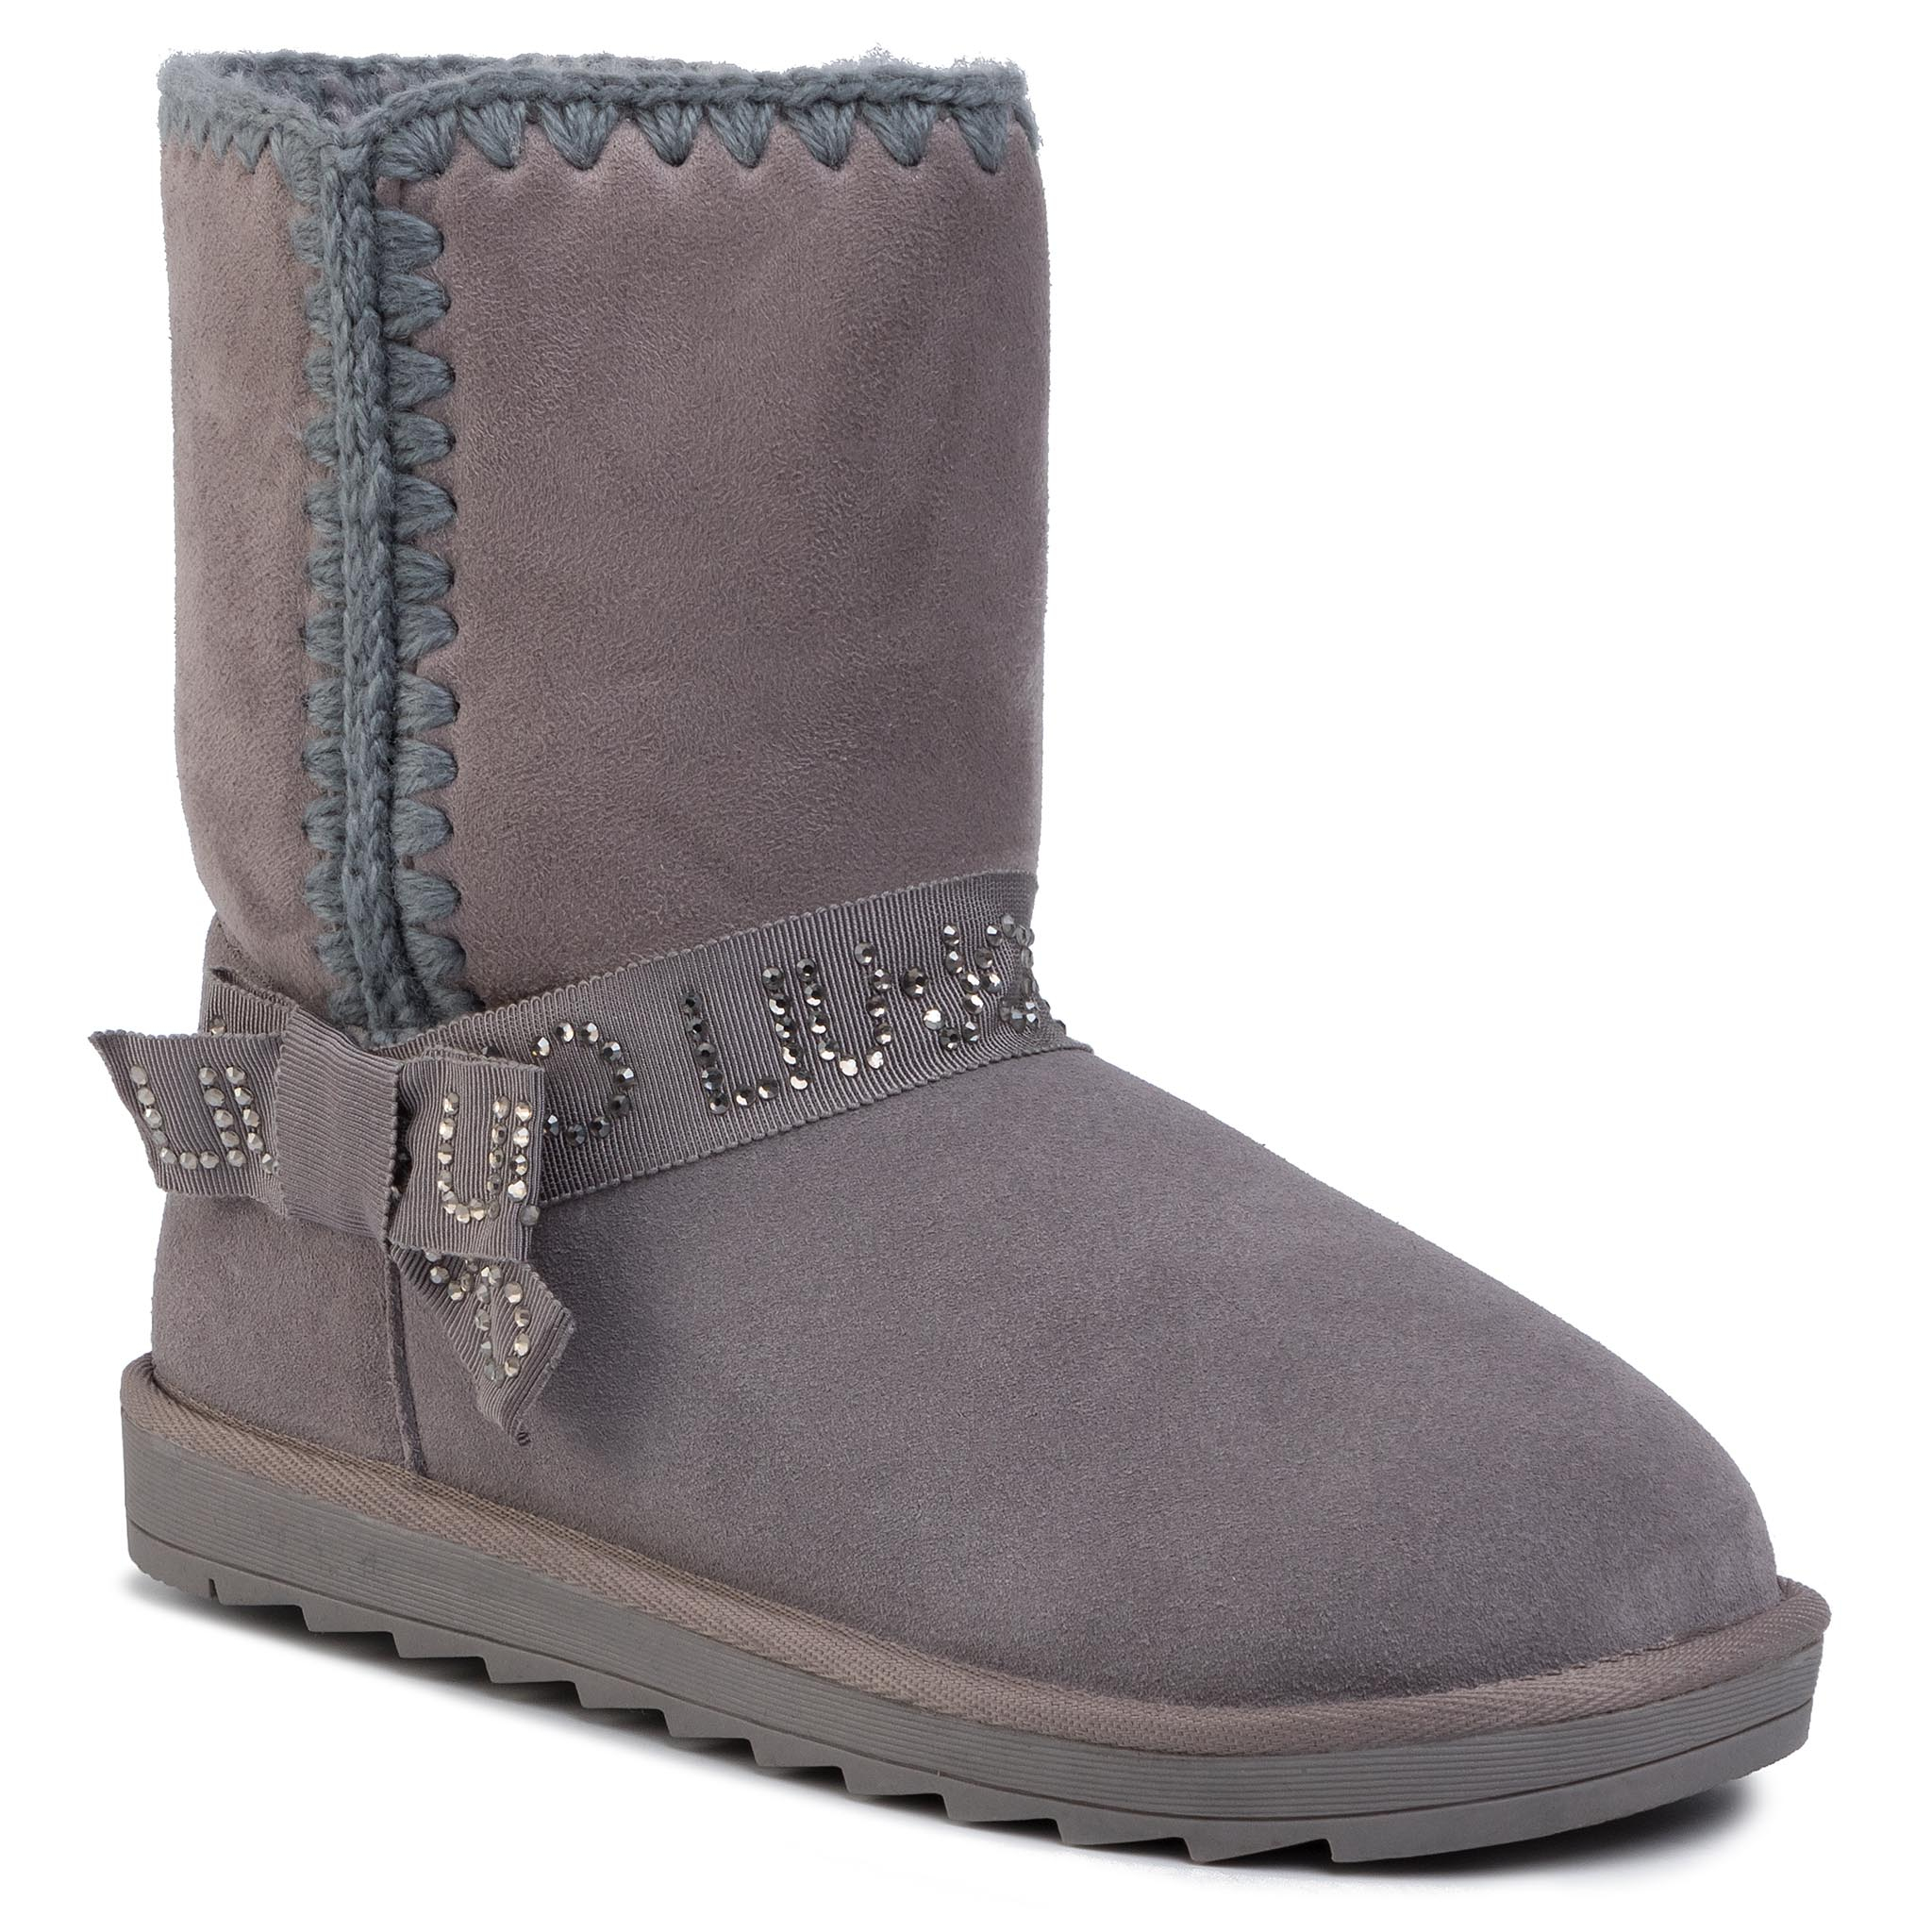 Pantofi Liu Jo - Margot 9 469735 Px052 D Grey 01072 imagine epantofi.ro 2021